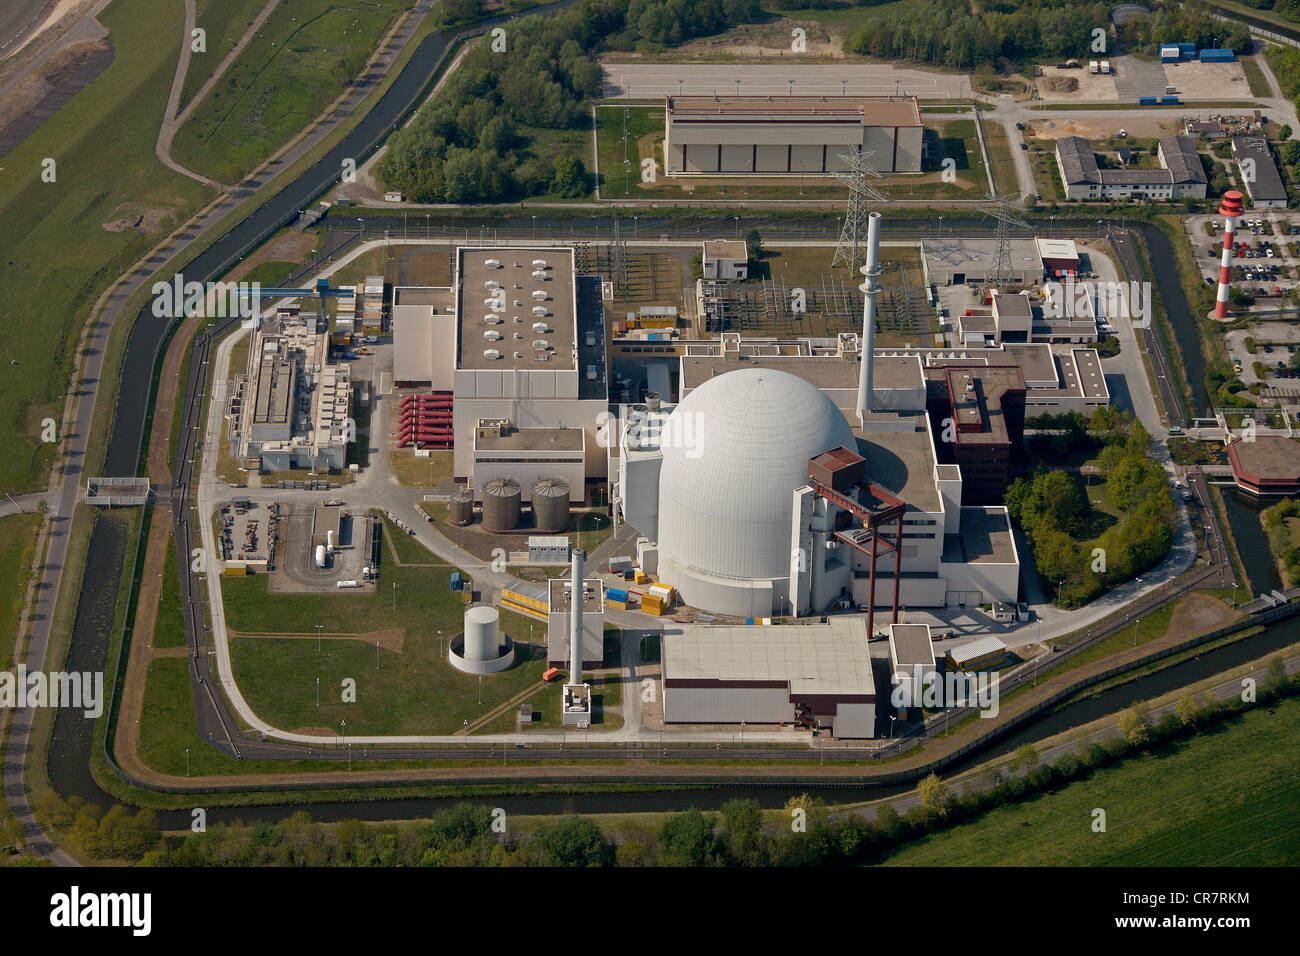 Aerial view, Brokdorf Nuclear Power Plant, Elbe, Schleswig-Holstein, Germany, Europe - Stock Image